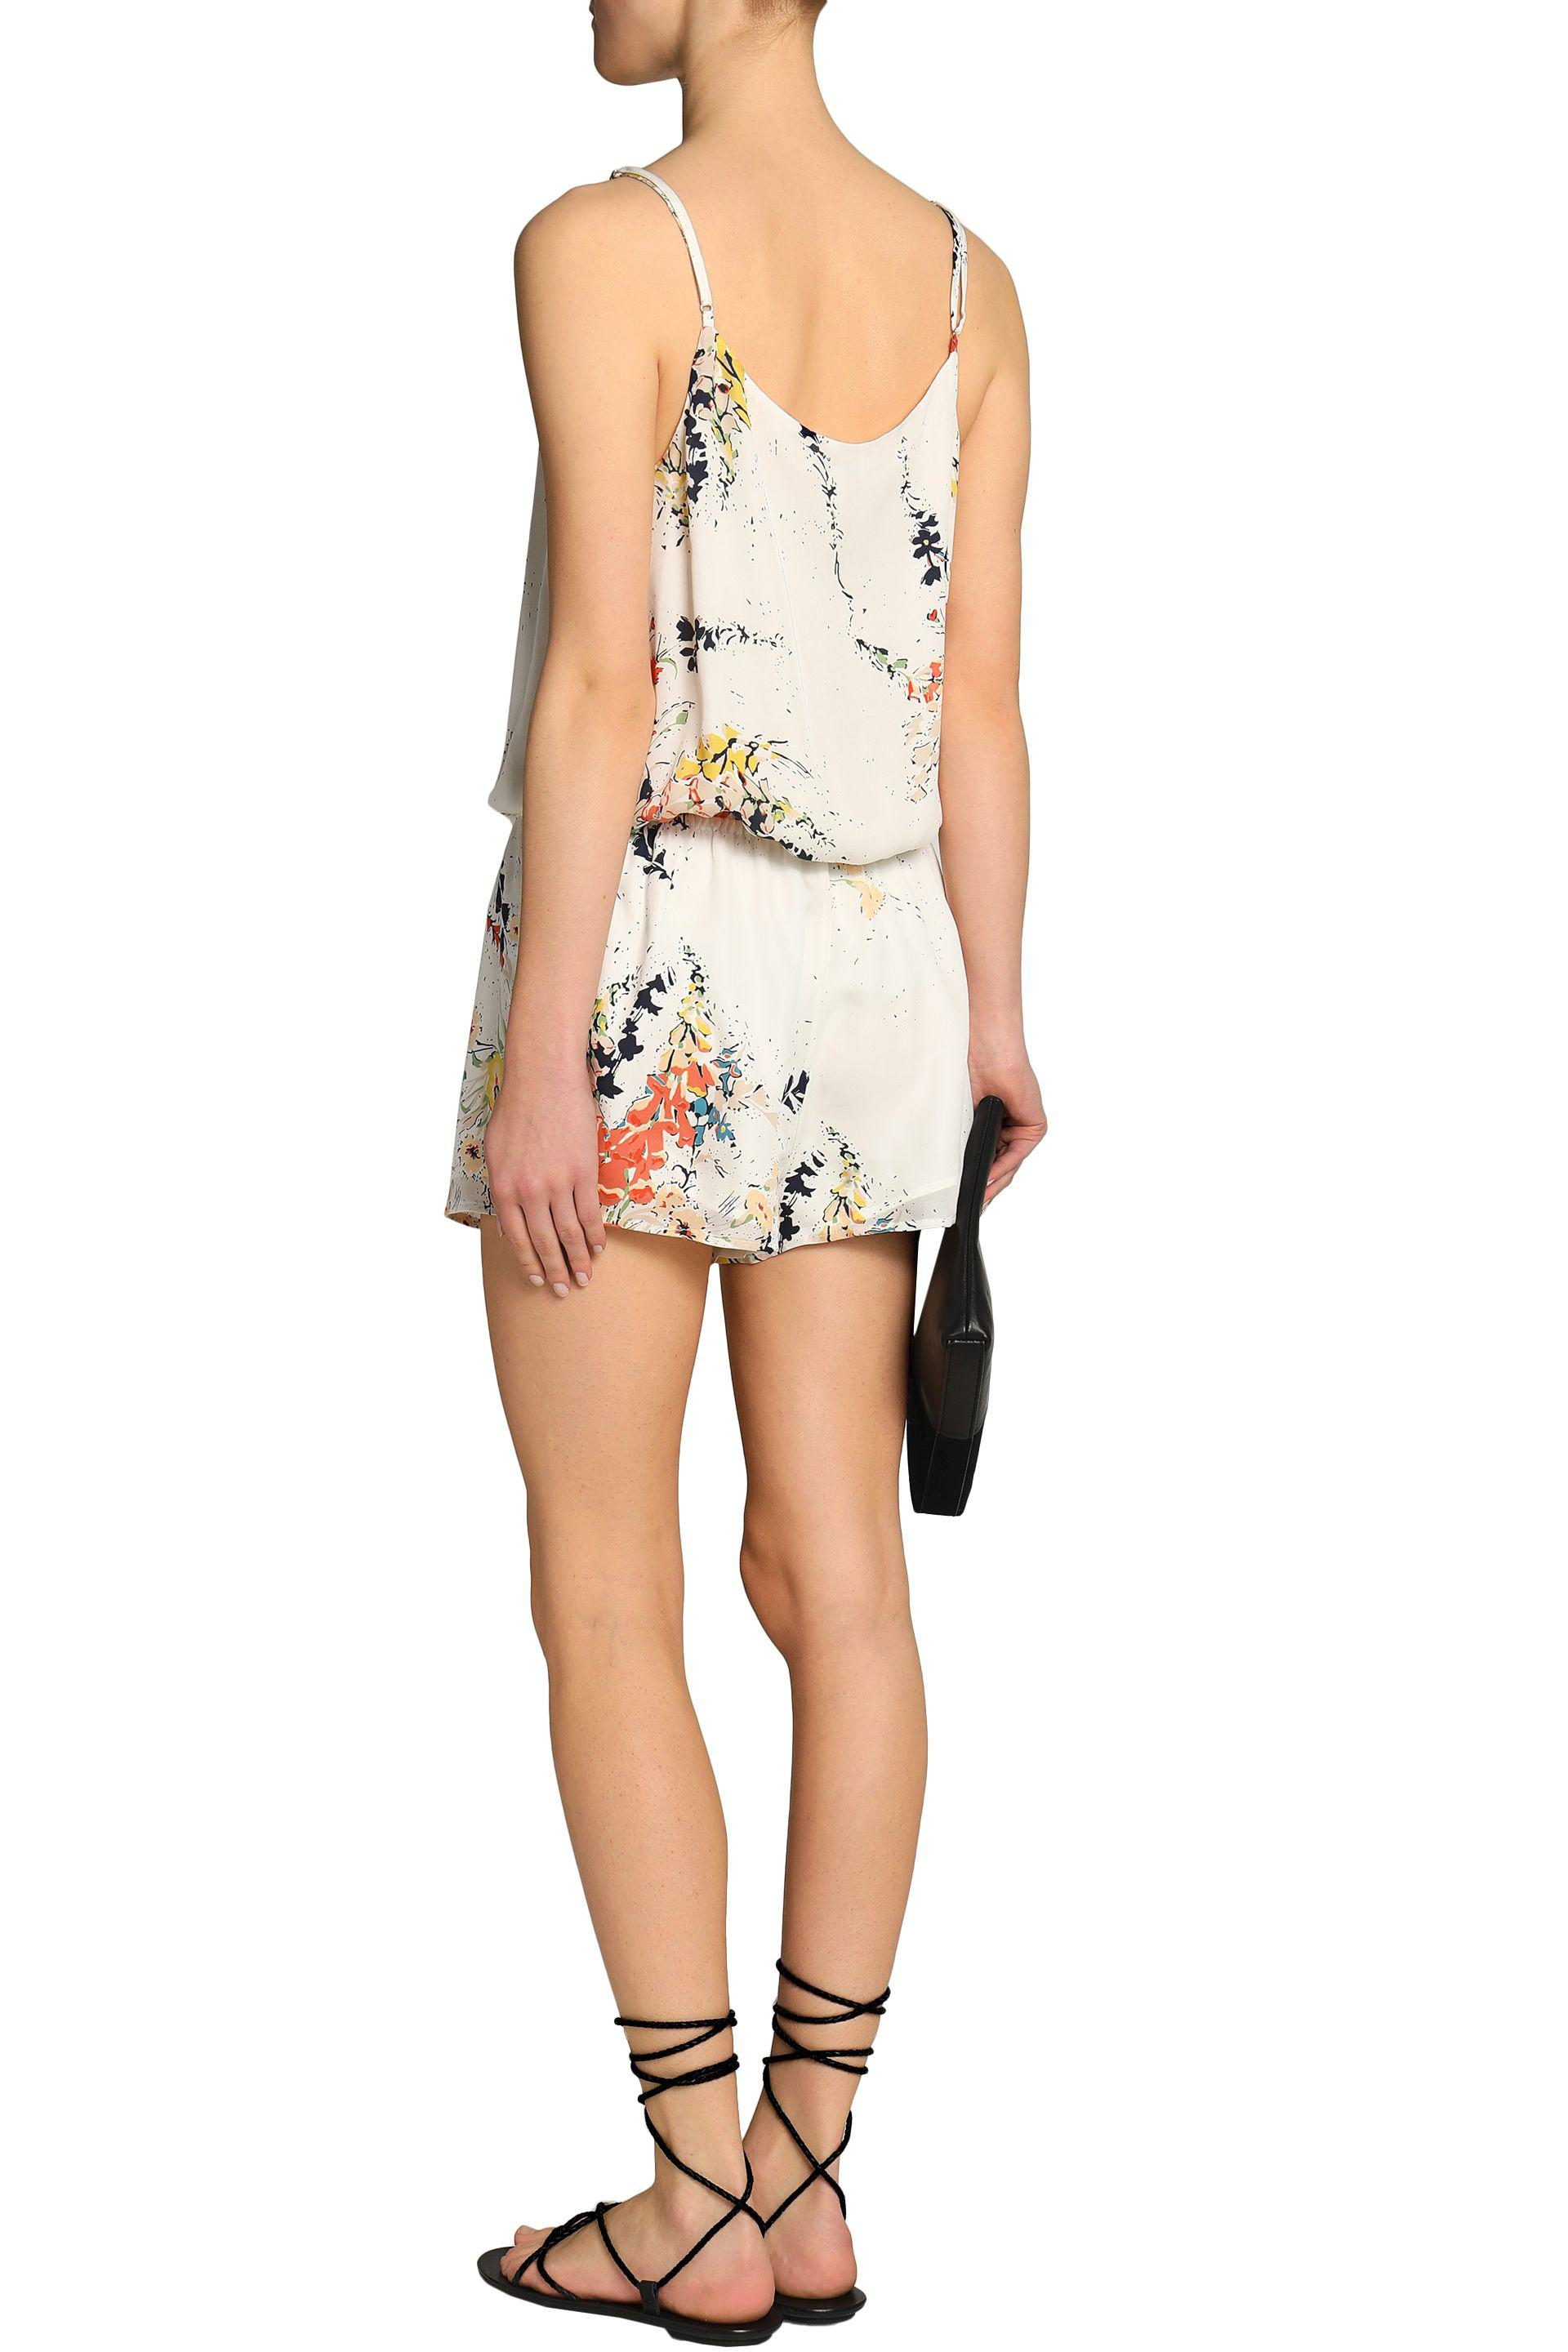 joie-Off-white-Jerrica-Wrap-effect-Floral-print-Silk-Crepe-De-Chine-Playsuit.jpeg c2820ed4142